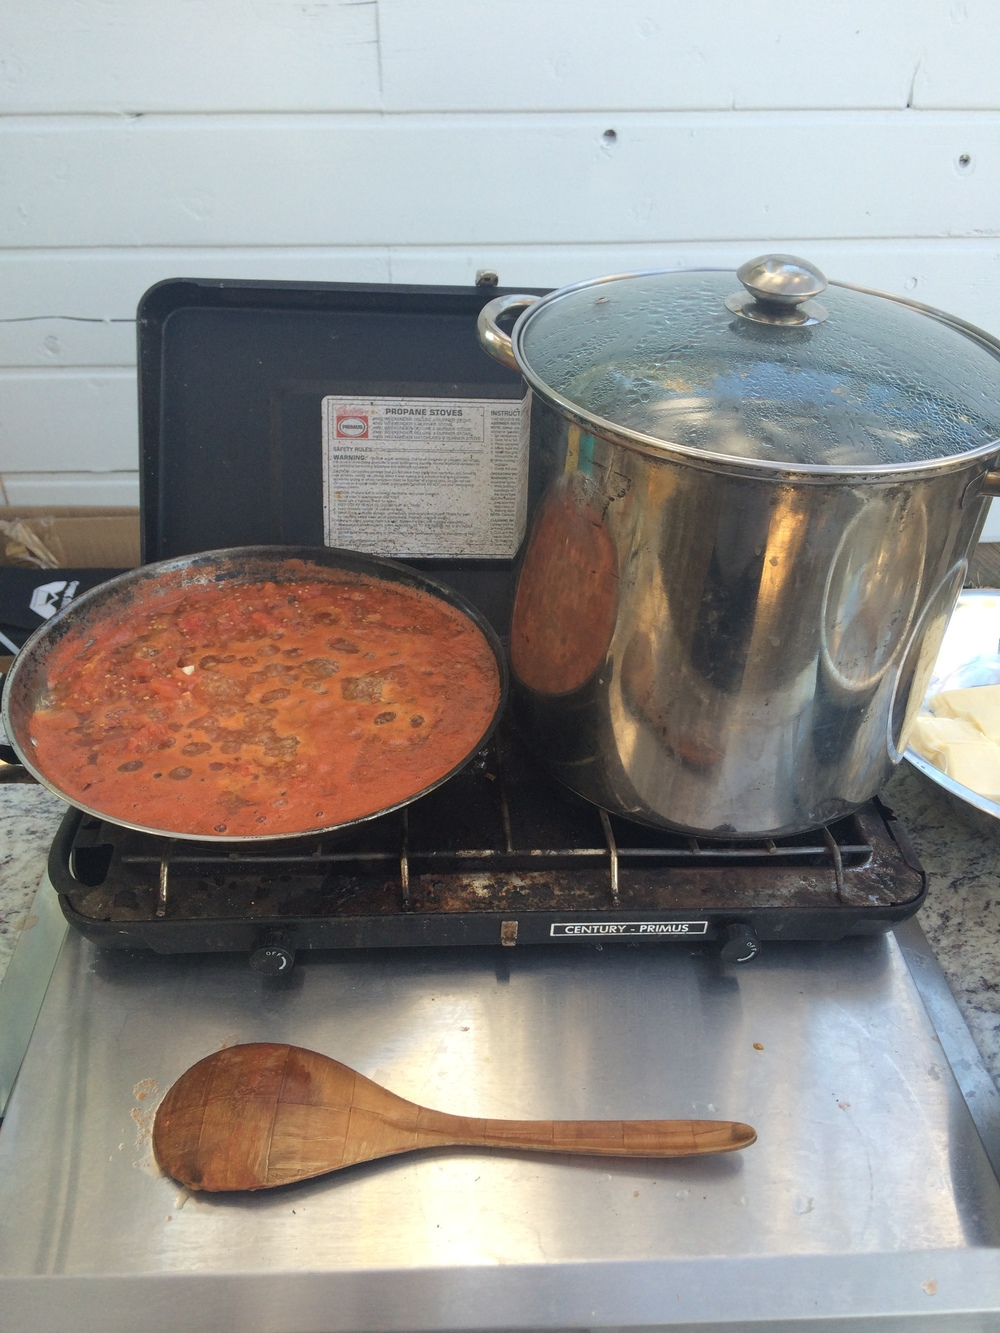 Now the tomato sauce simmers before a meal together